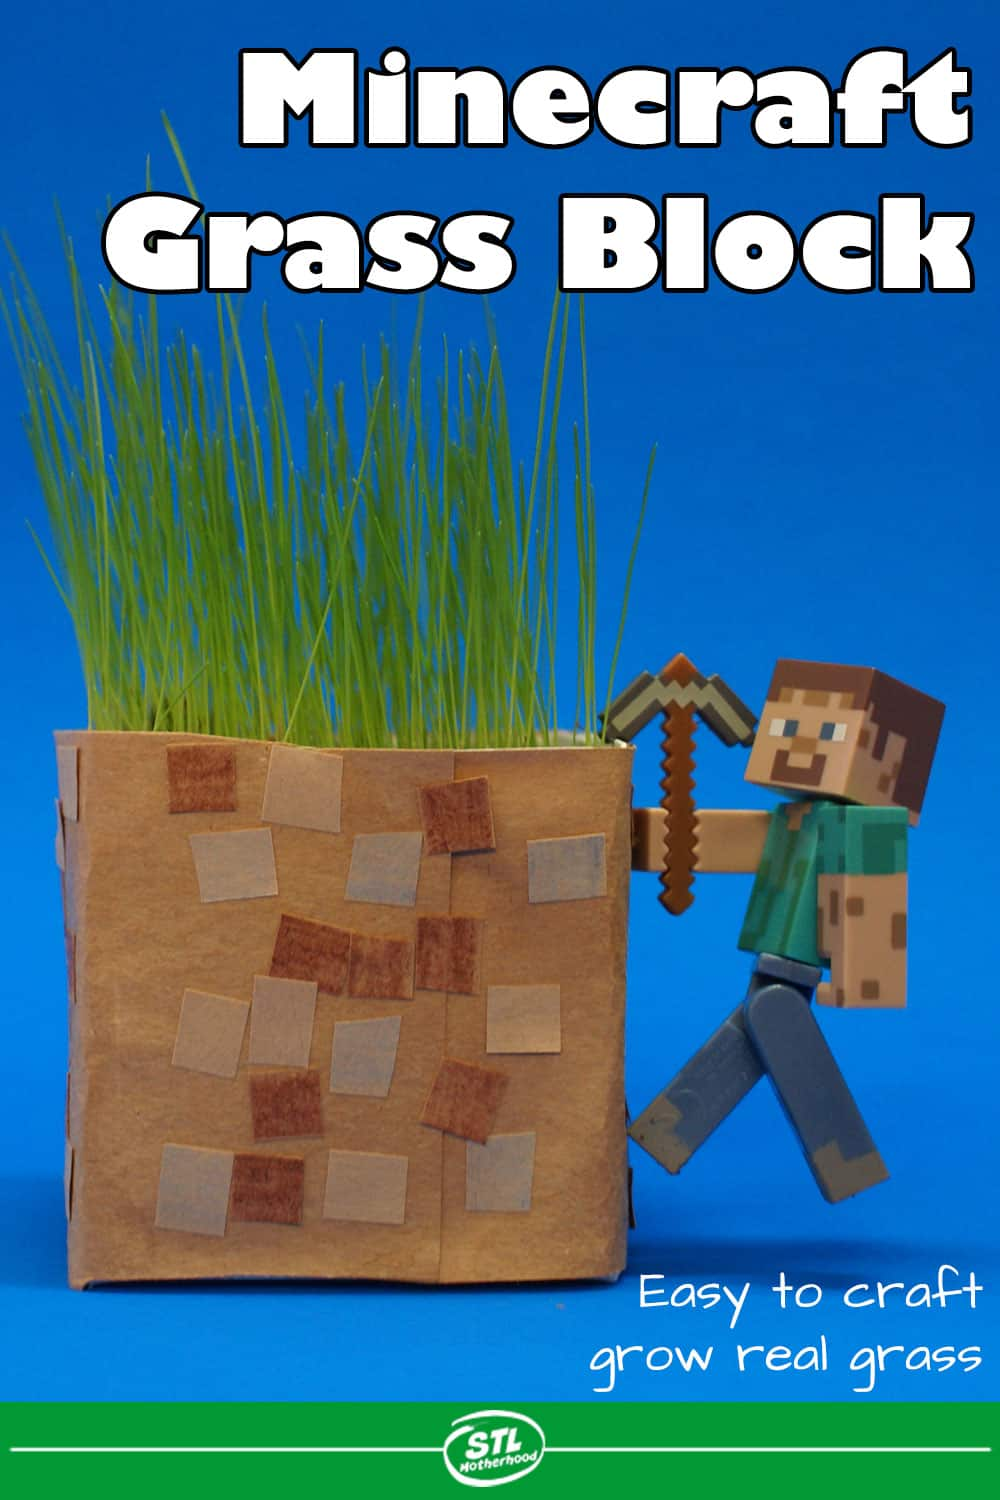 Minecraft block made from a dairy carton and decorated with paper, planted with grass.